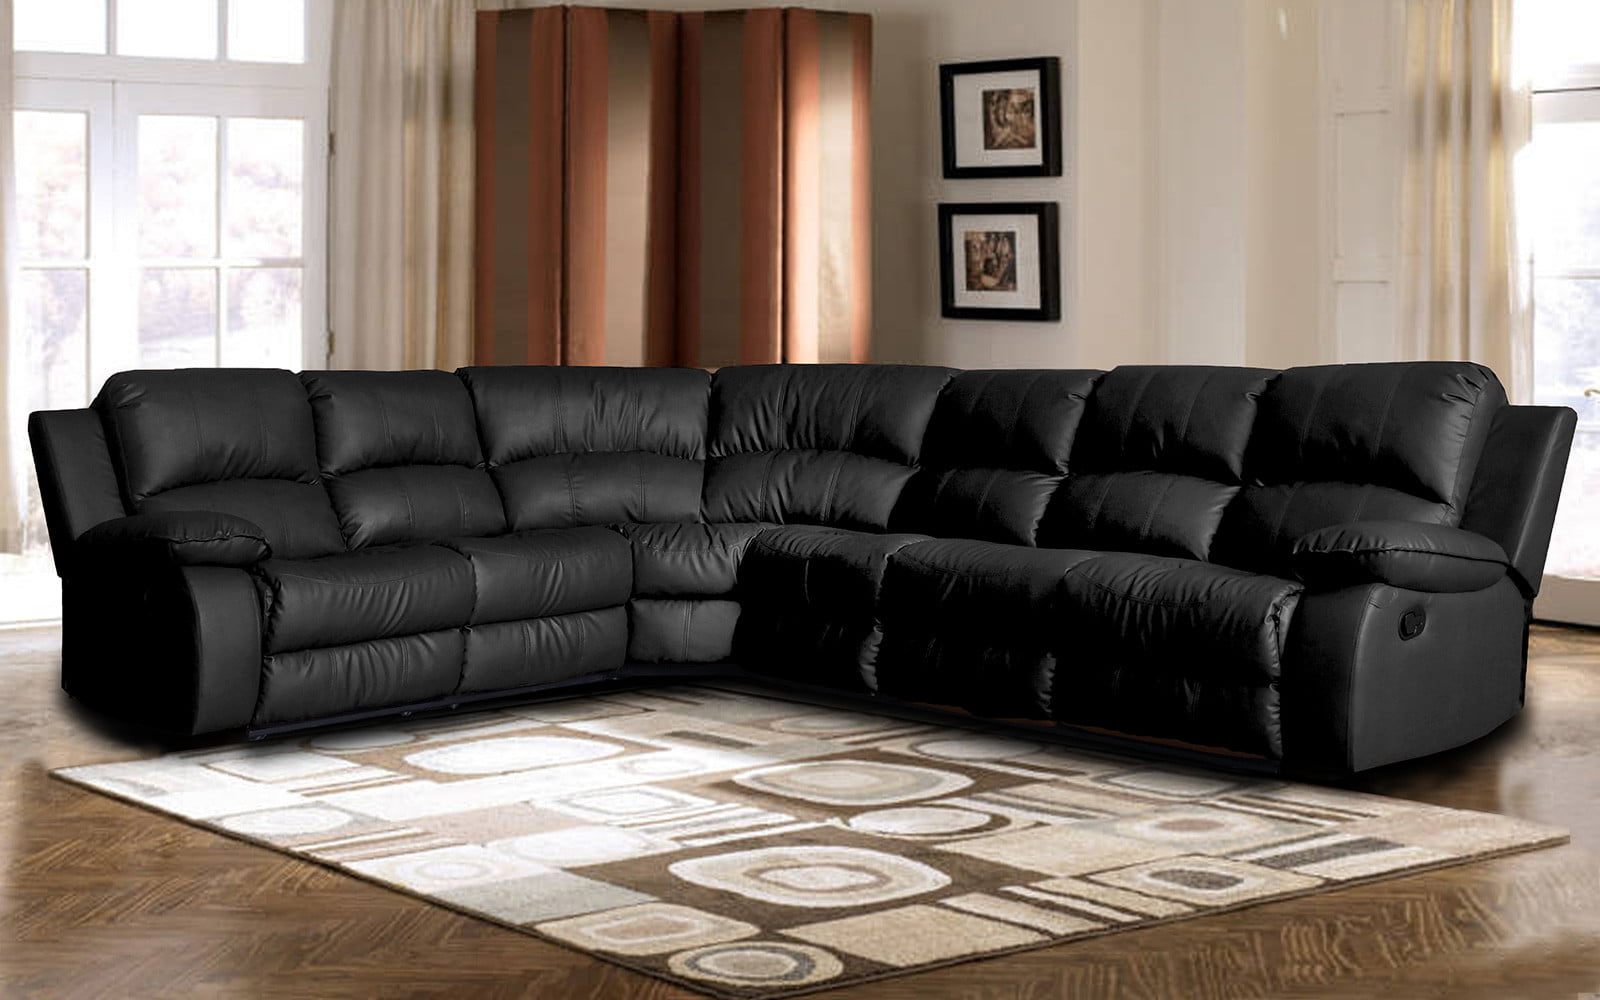 classic oversize and overstuffed corner bonded leather sectional with reclining seats. black sectional sofas  walmartcom